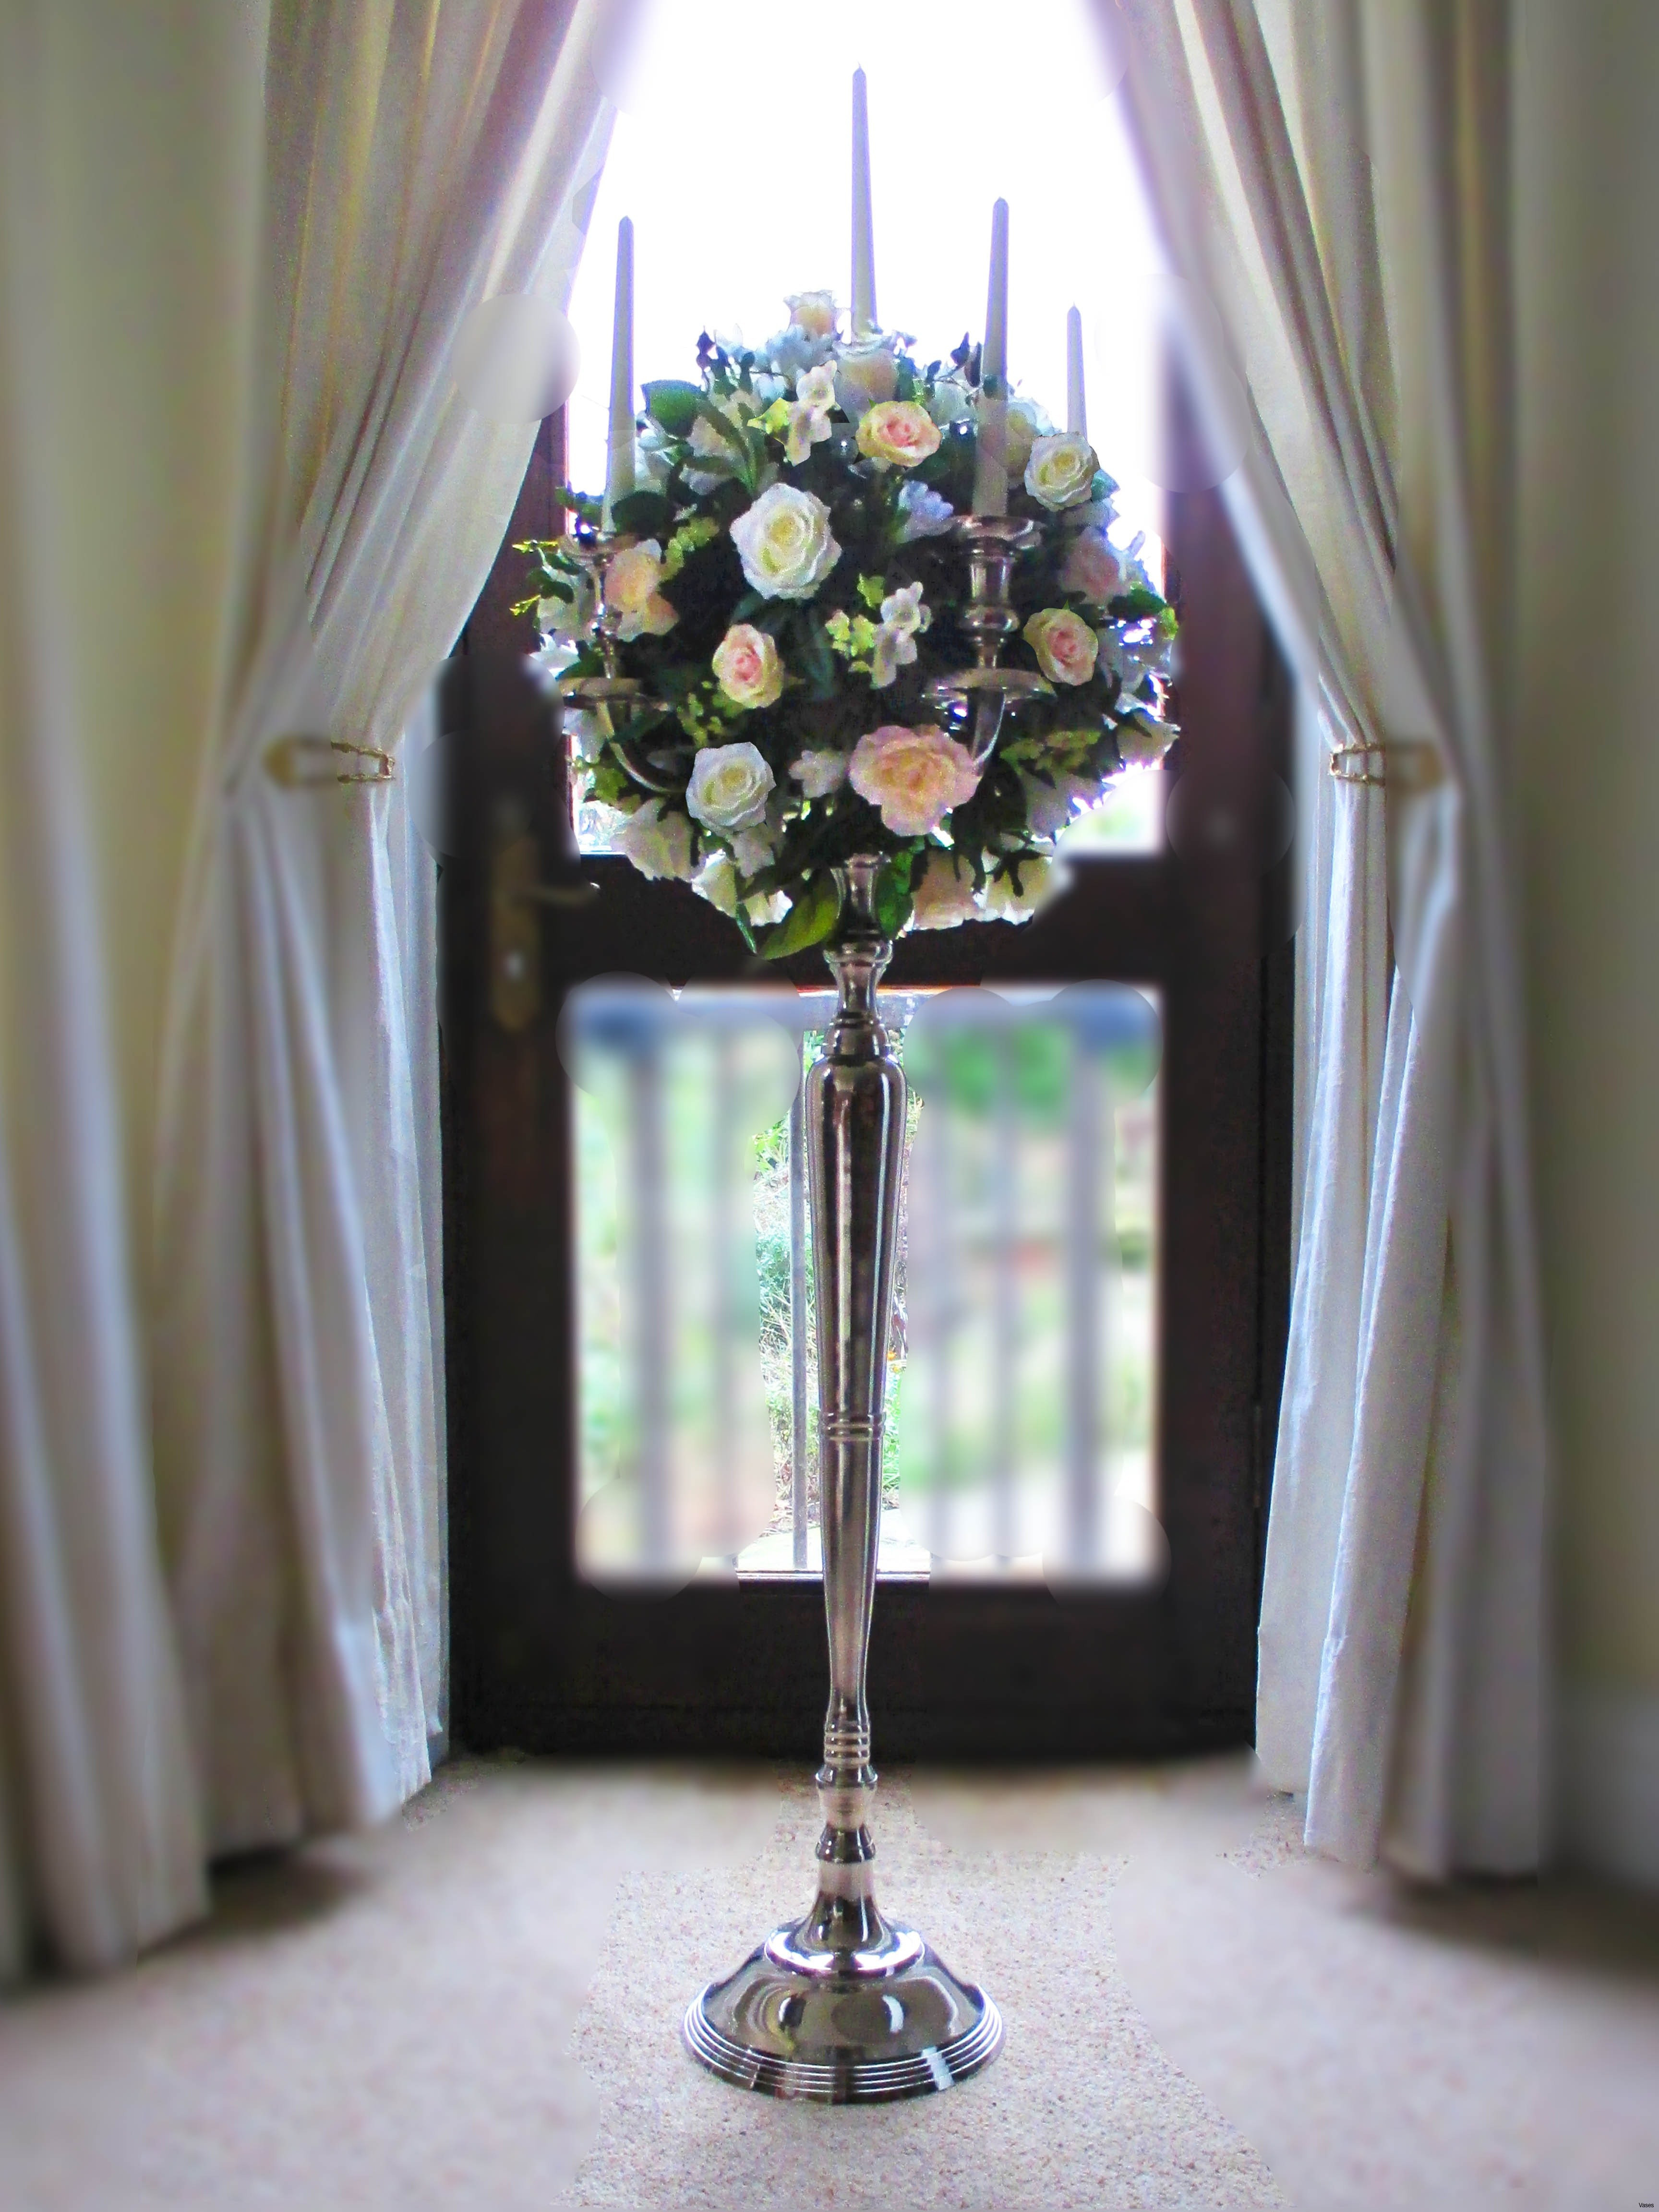 silver square vases wholesale of silver square vase gallery cheap wedding bouquets packages 5397h with silver square vase gallery cheap wedding bouquets packages 5397h vases silver vase leeds i 0d of